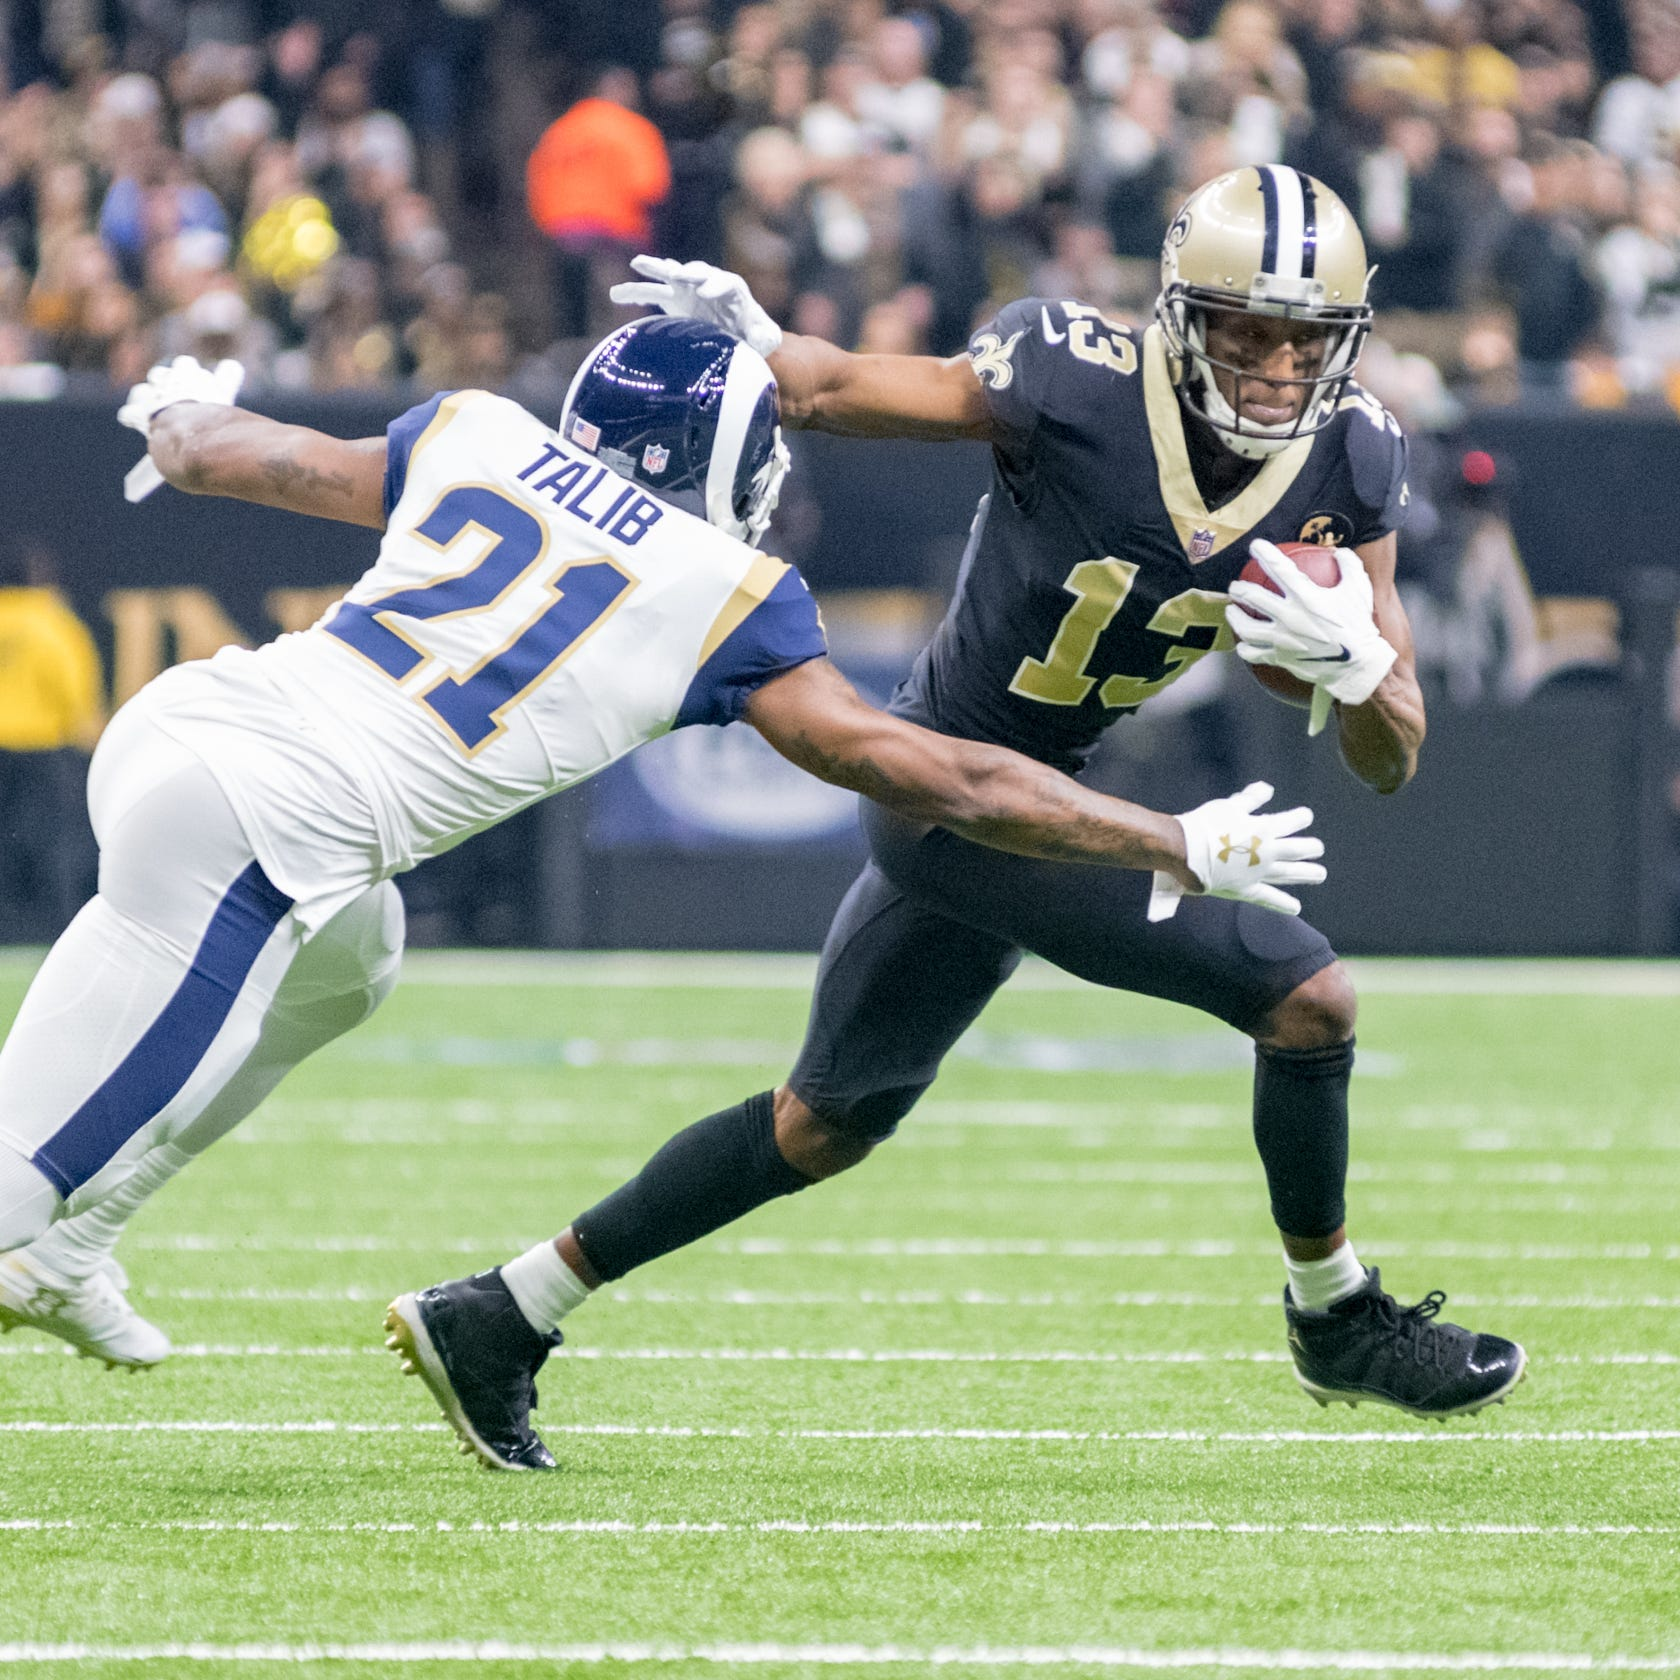 Michael Thomas cites NFL rulebook on 'extraordinarily unfair acts'